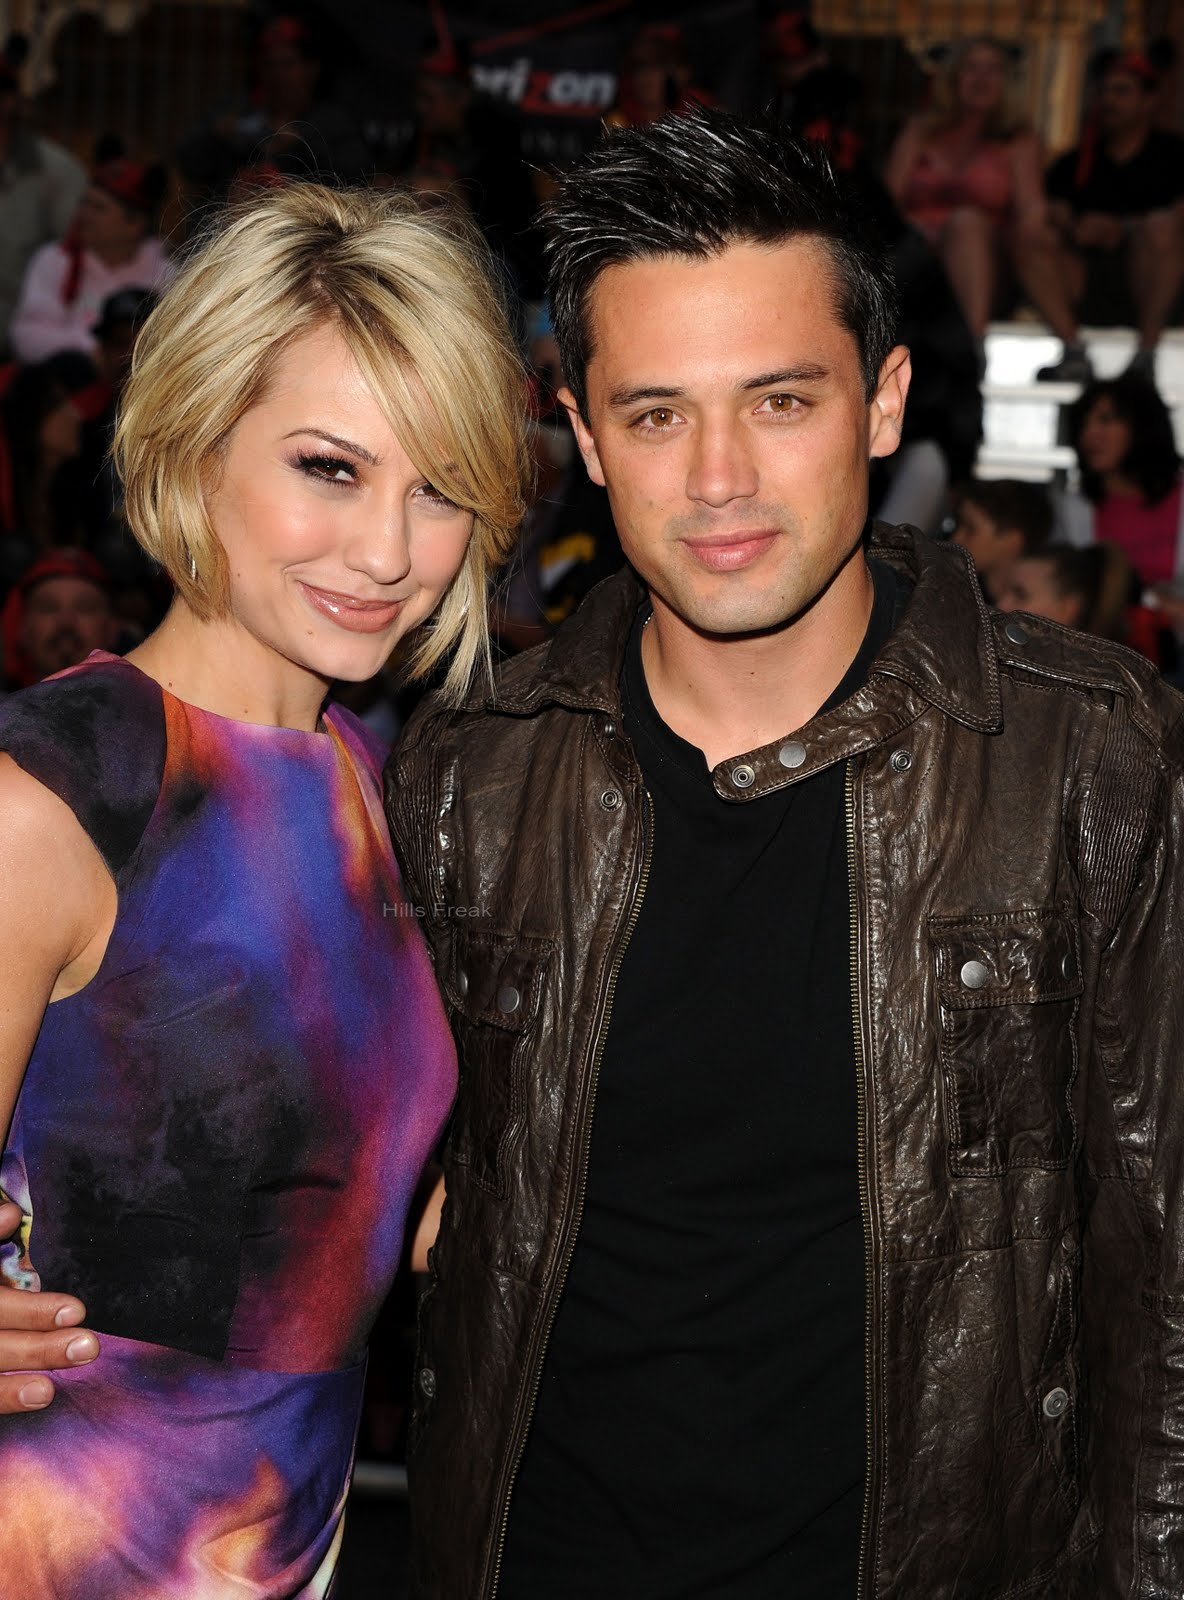 stephen and lc dating The first man that was linked to lauren conrad is american actor stephen colletti  the two were said to have dated from 2004 to 2005 they were high school.